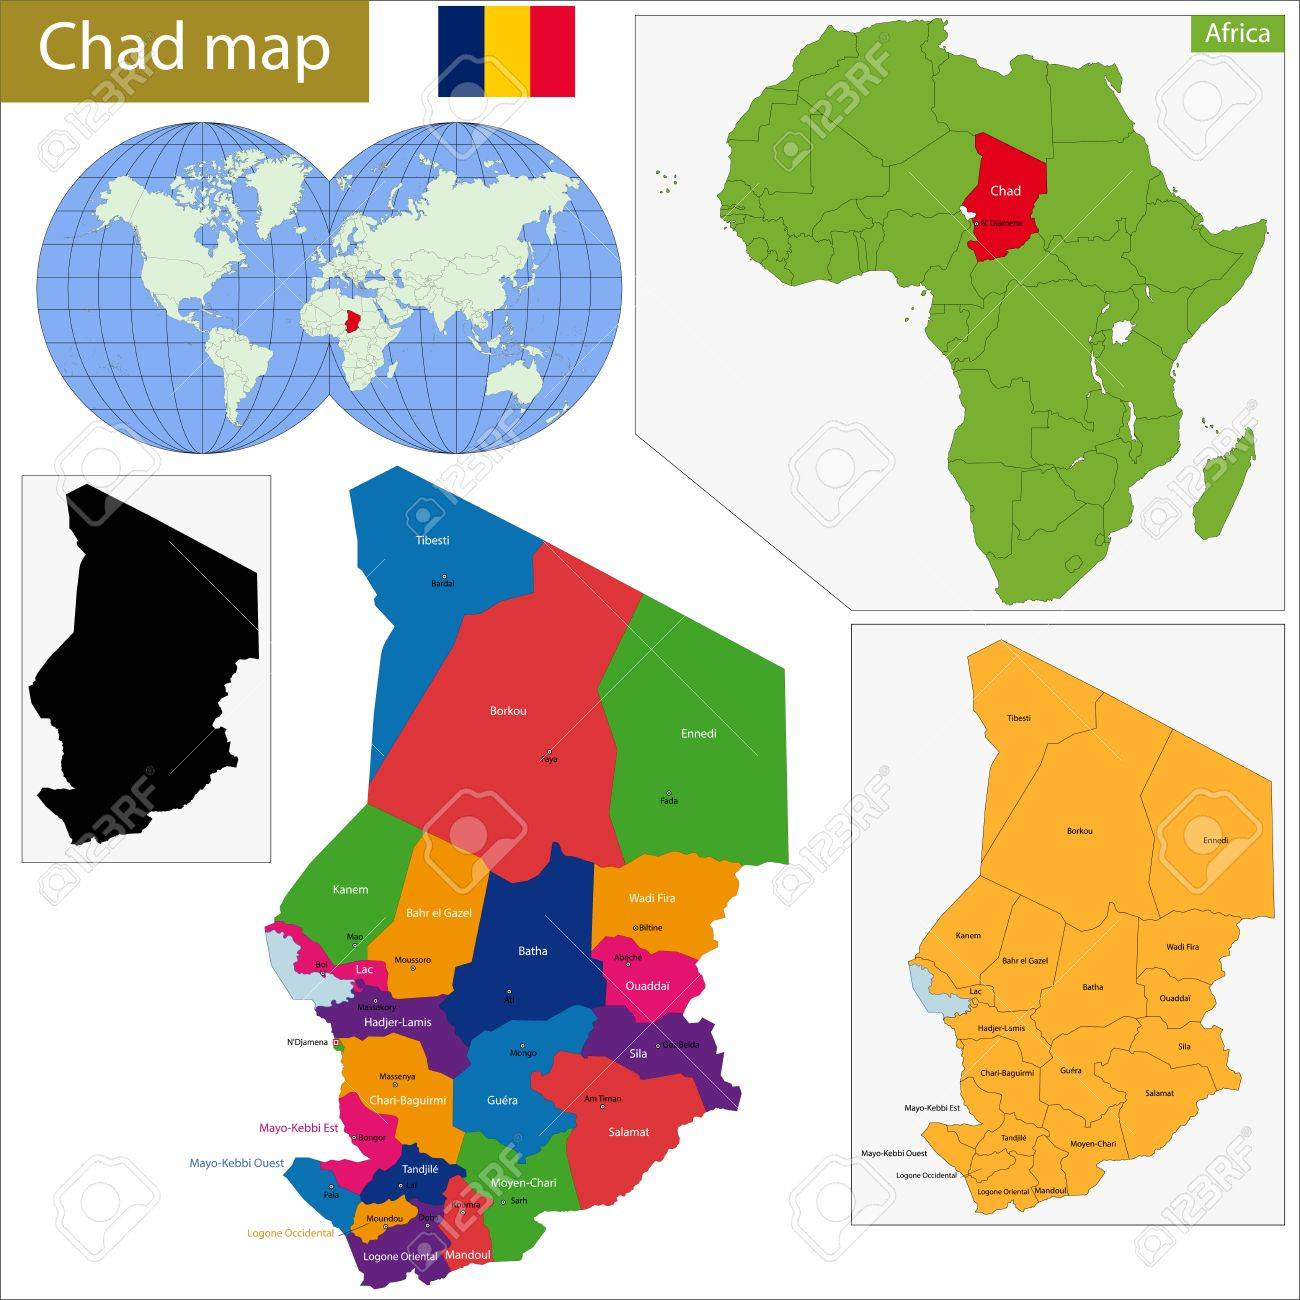 Chad Map With High Detail And Accuracy And It Is Divided Into - Chad map